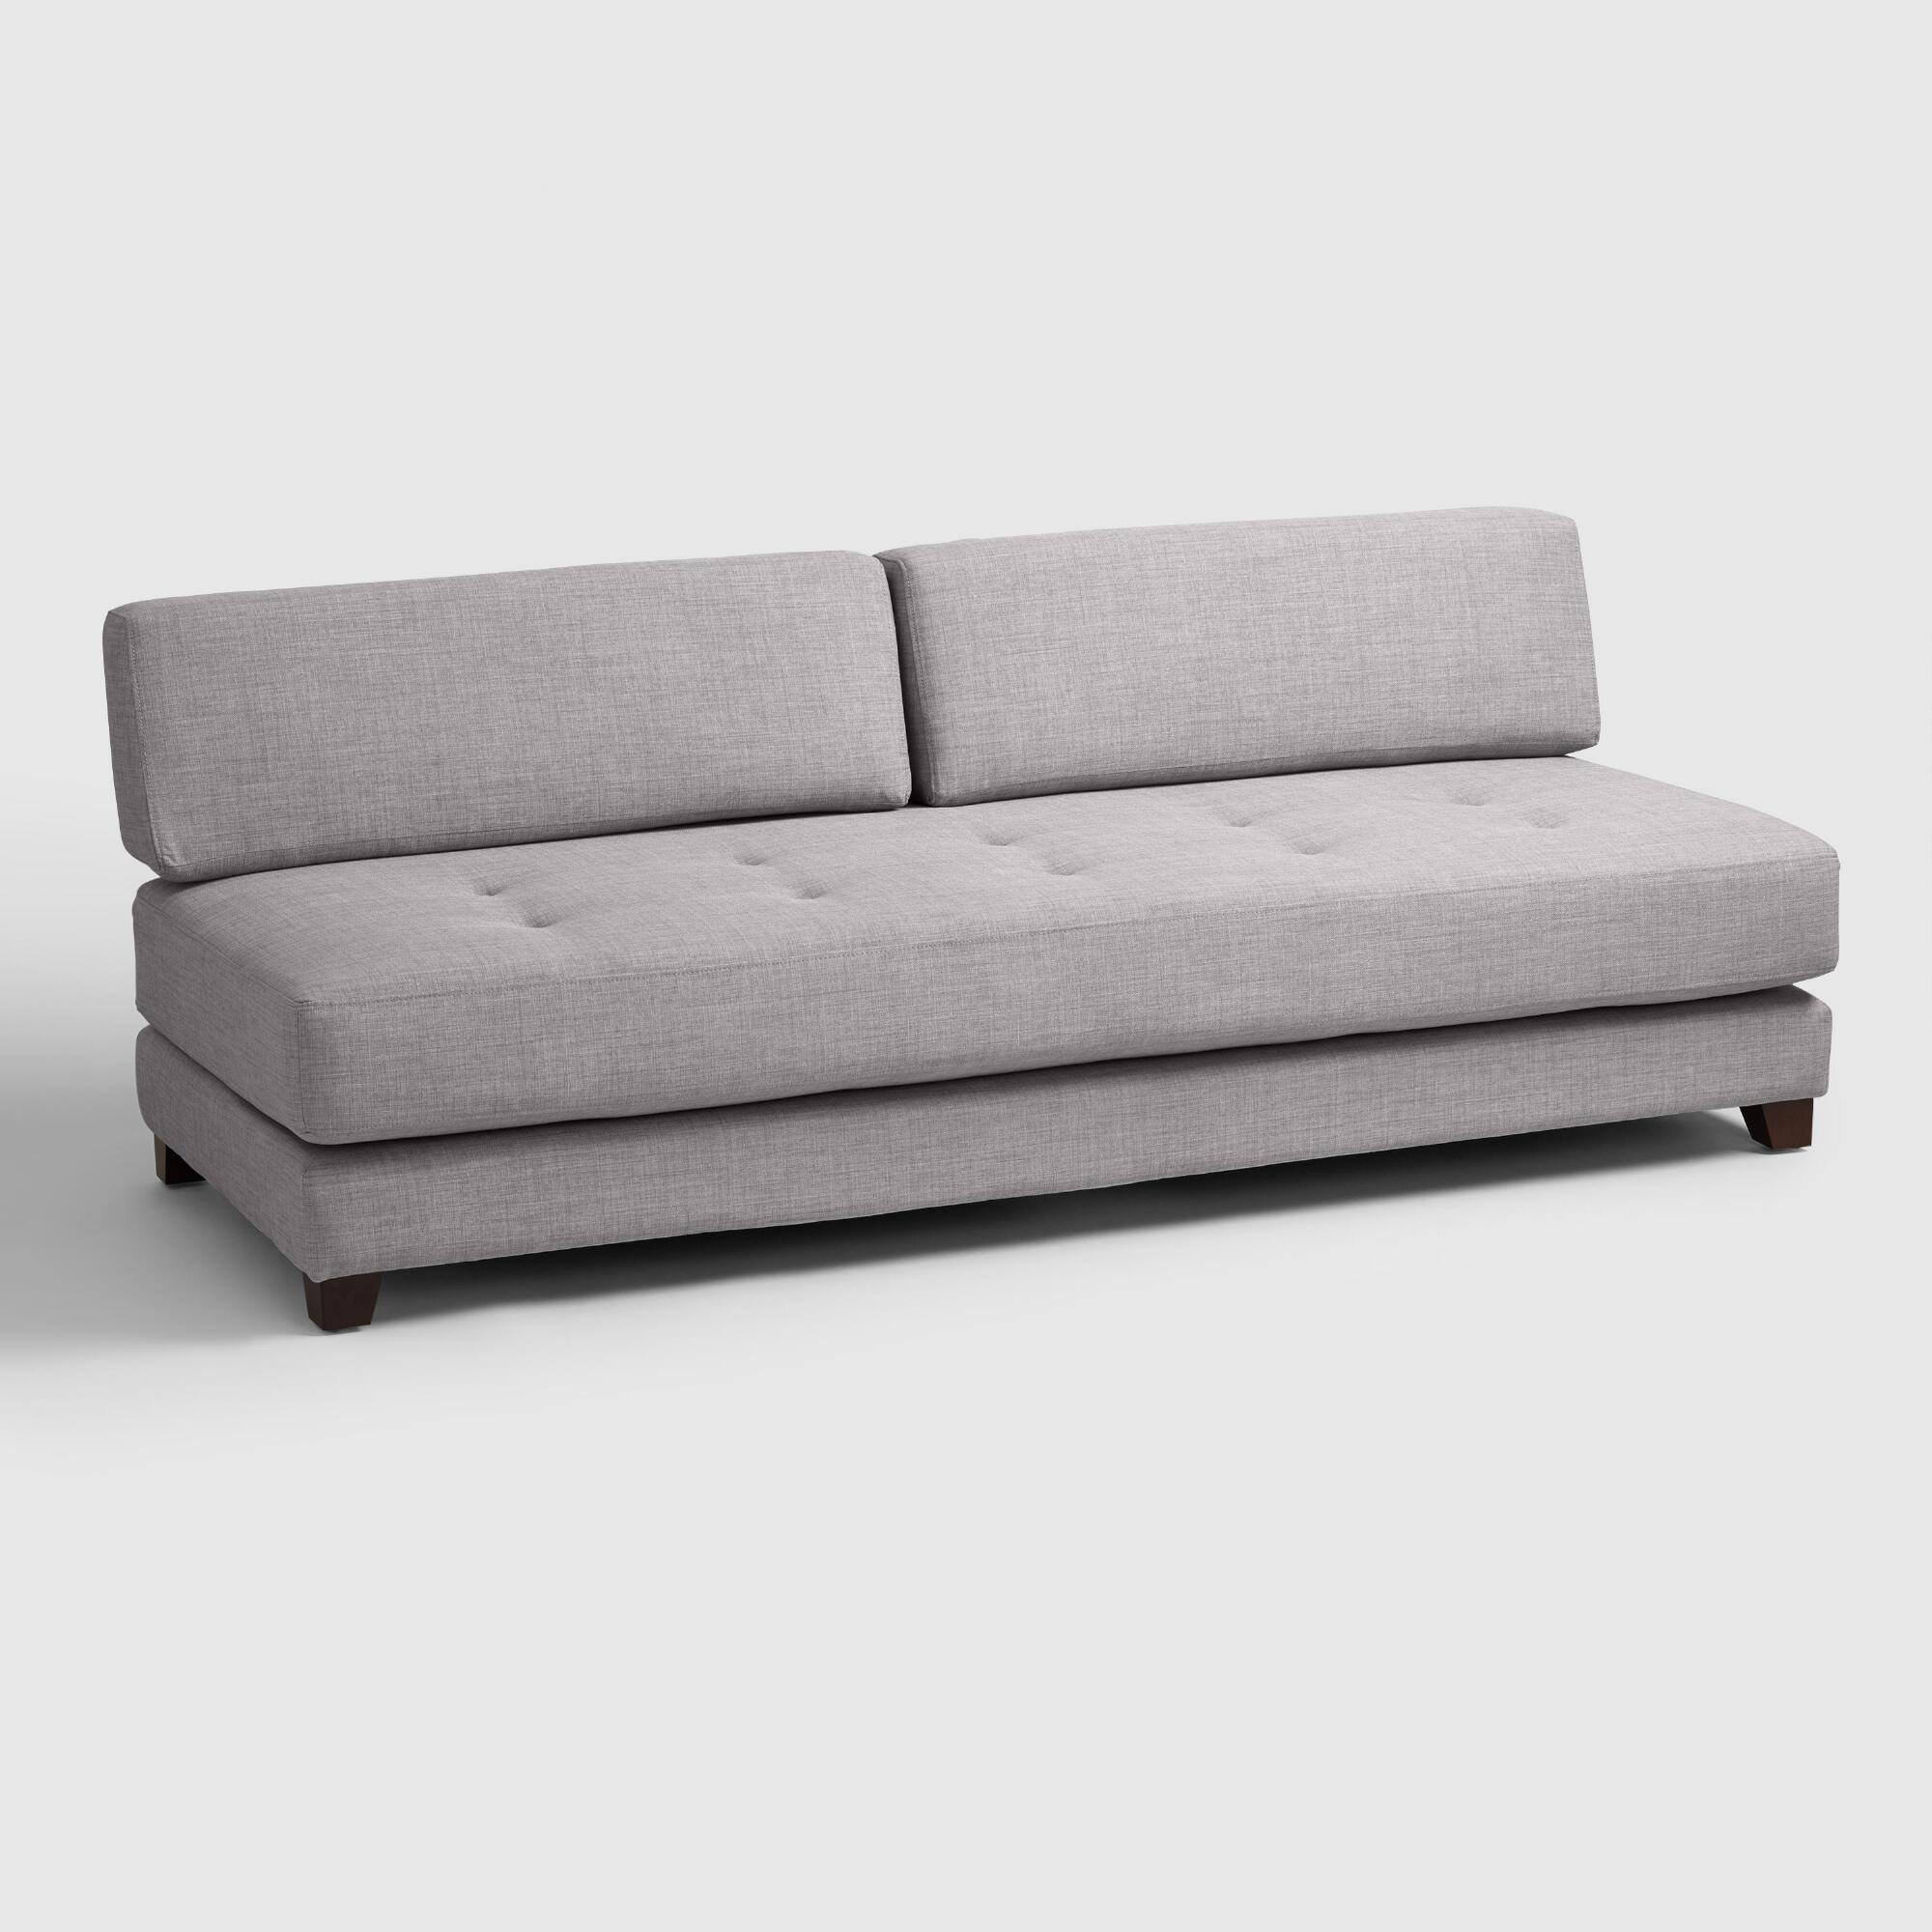 Furniture: 2 Seater Chair | Bobs Furniture Pit | Cheap Sectional Inside Pit Sofas (Image 4 of 20)